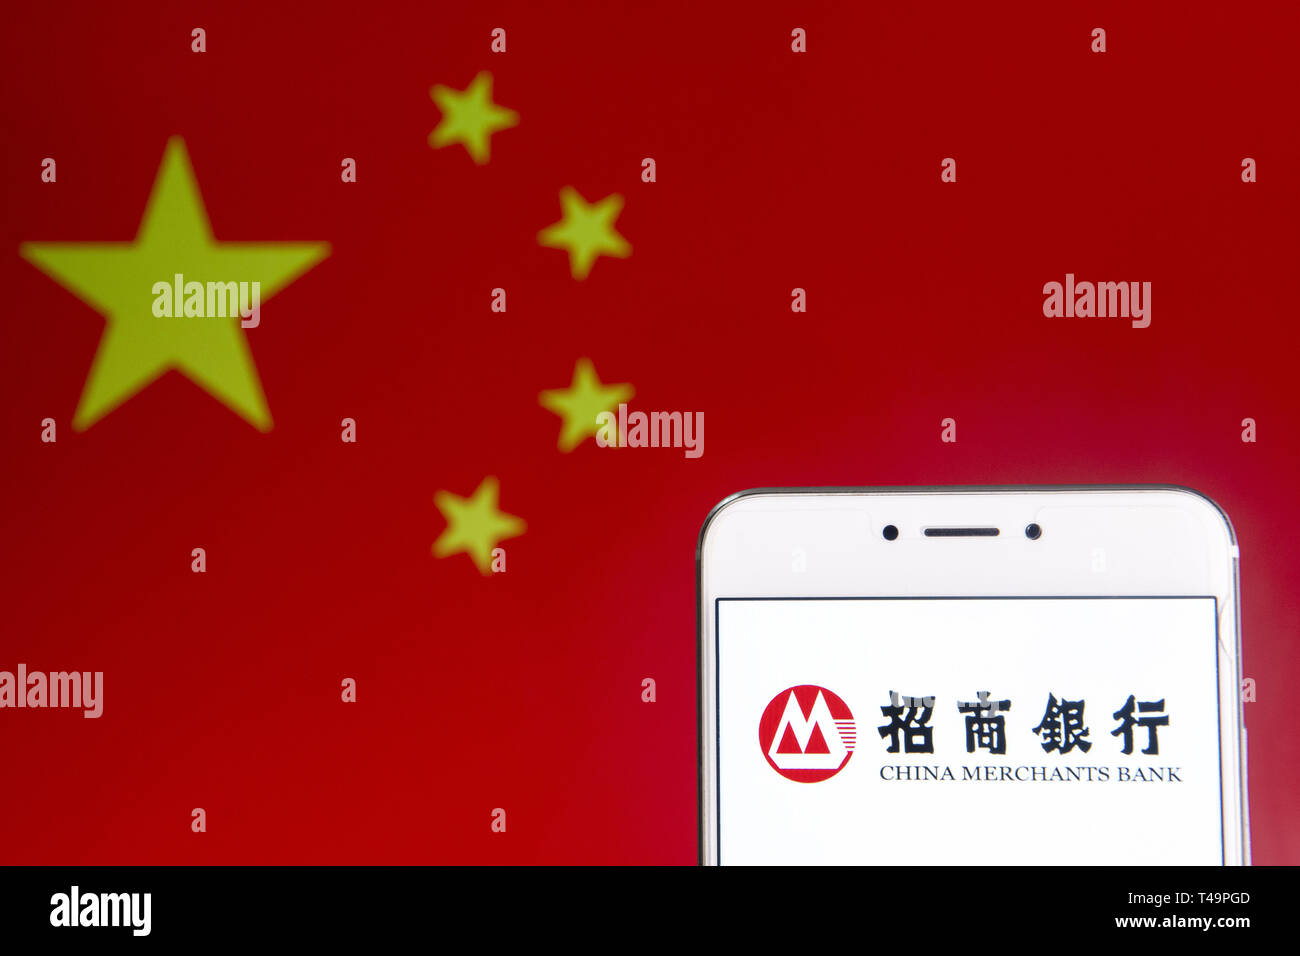 Hong Kong. 6th Apr, 2019. In this photo illustration a Chinese state-owned banking and financial corporation China Merchants Bank logo is seen on an Android mobile device with People's Republic of China flag in the background. Credit: Budrul Chukrut/SOPA Images/ZUMA Wire/Alamy Live News - Stock Image